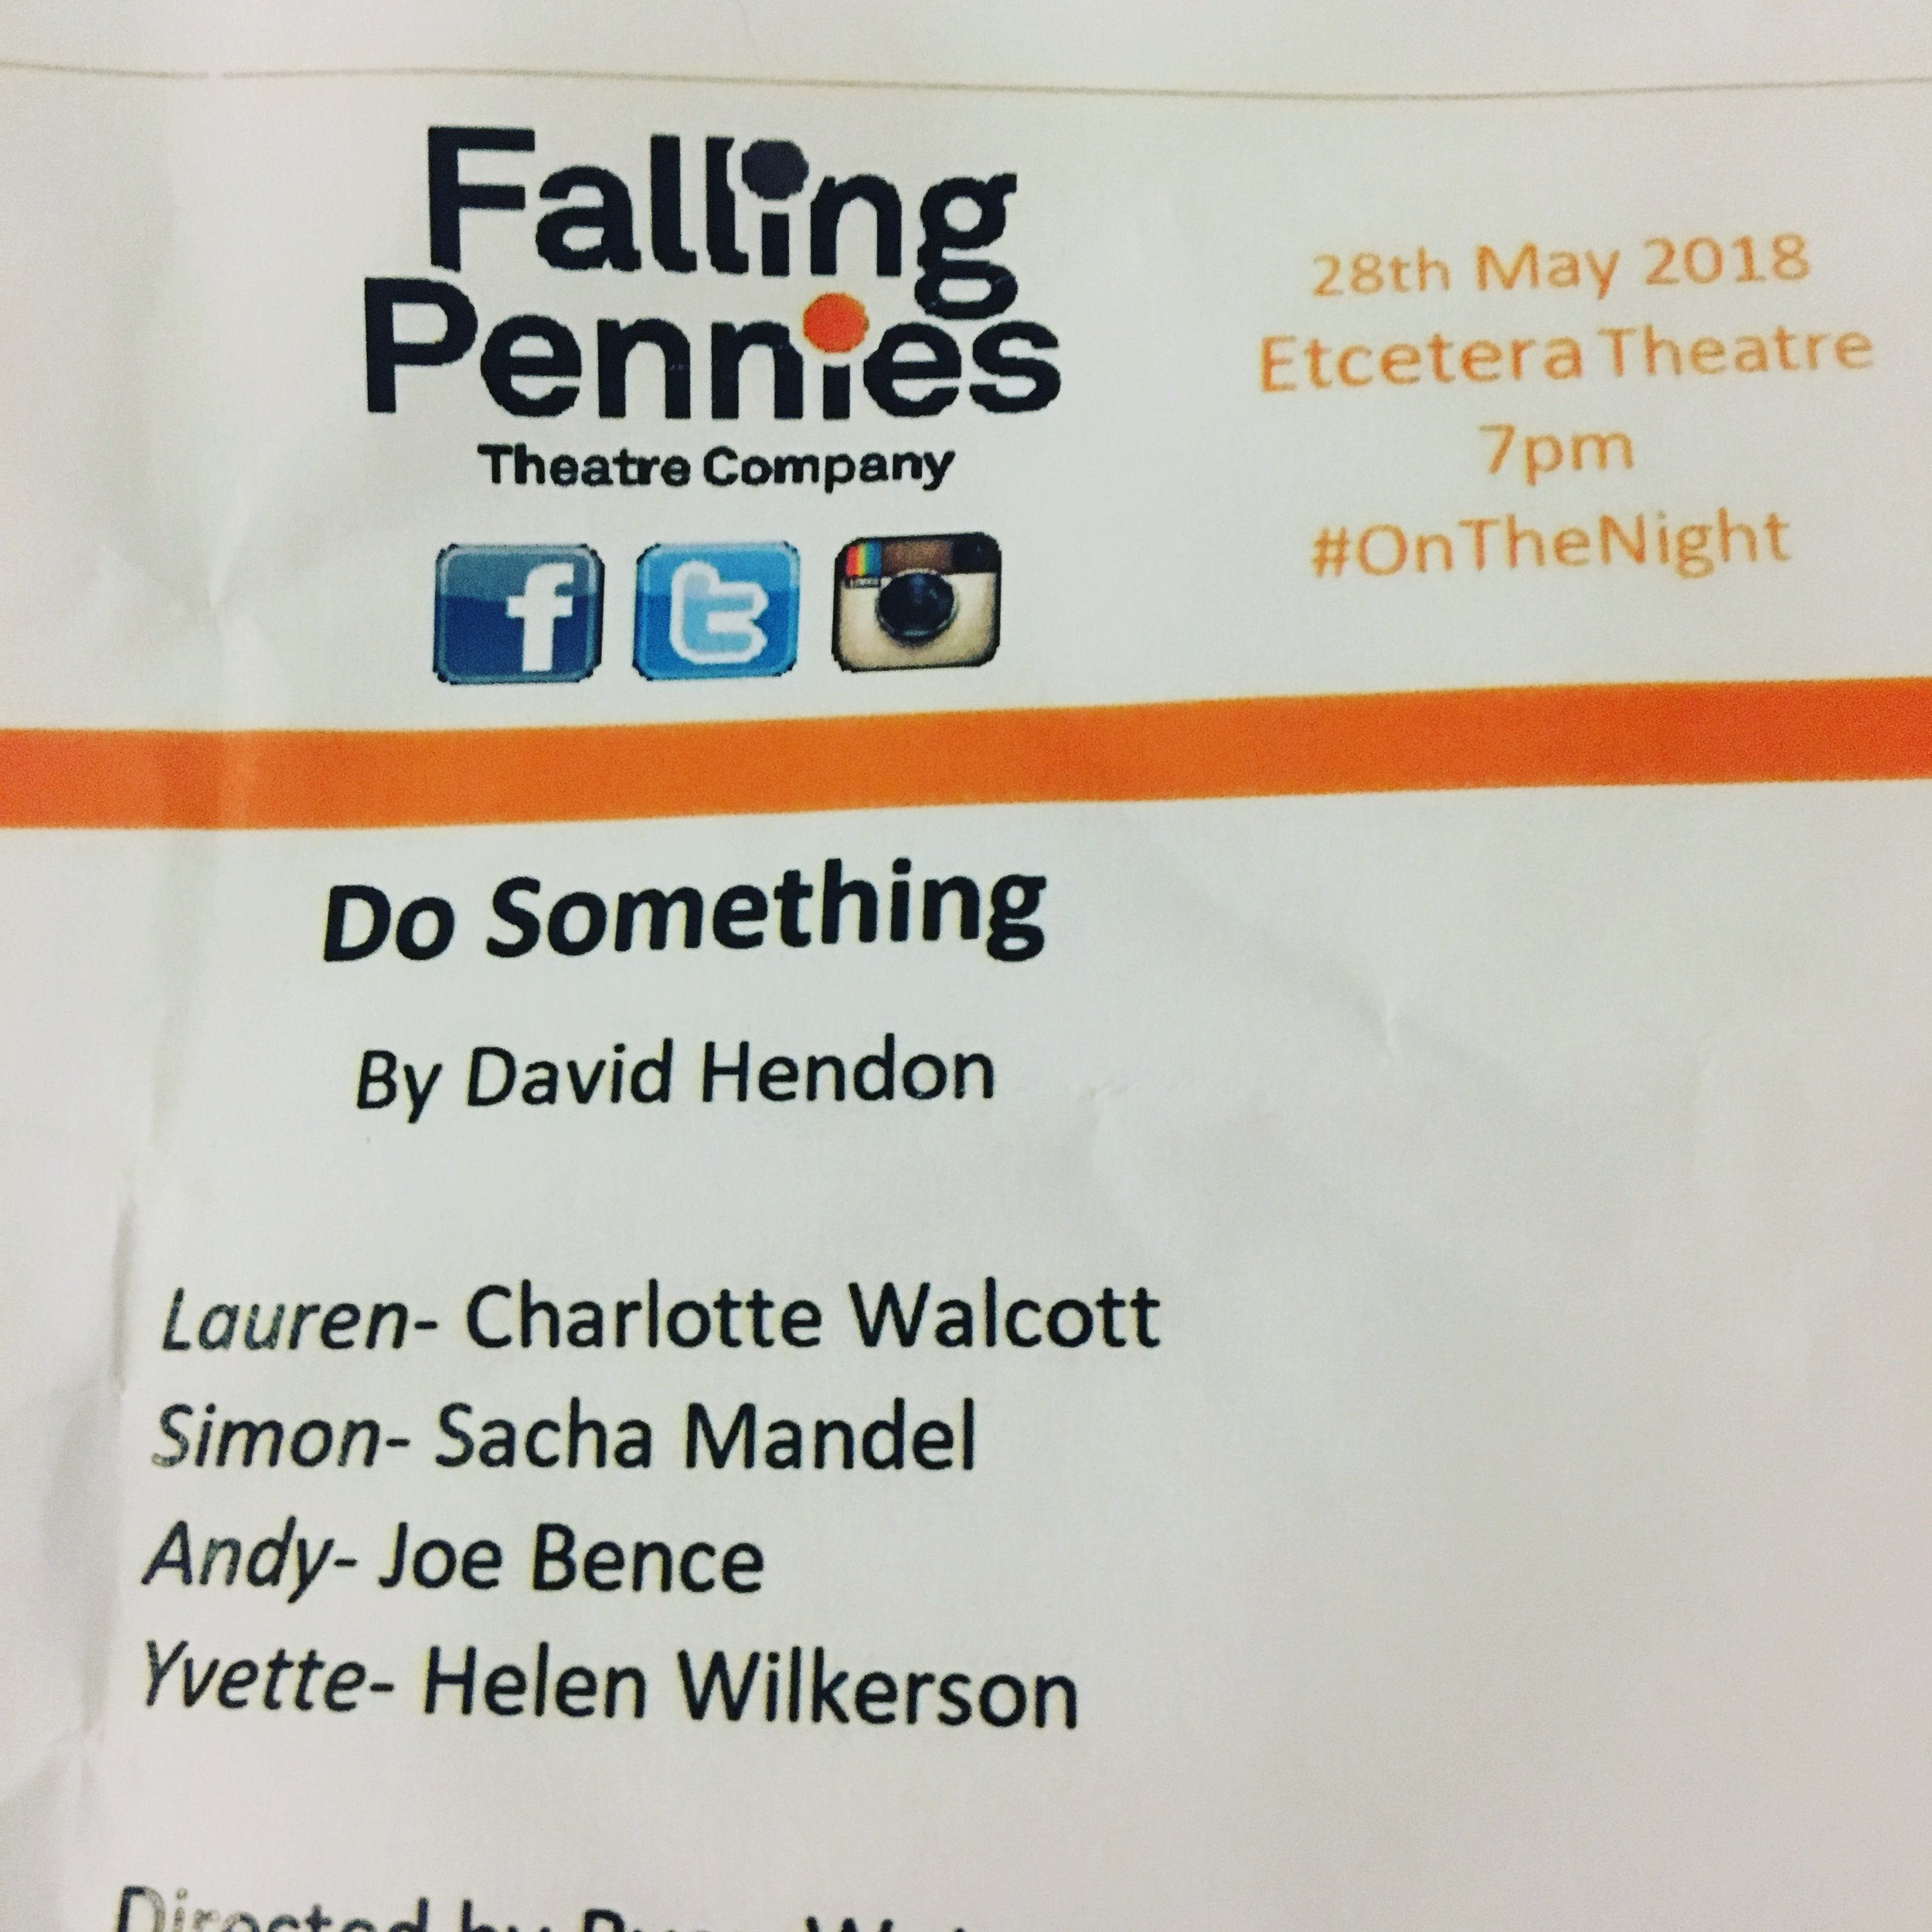 my short play do something! was staged at etcetera theatre in may 2018.